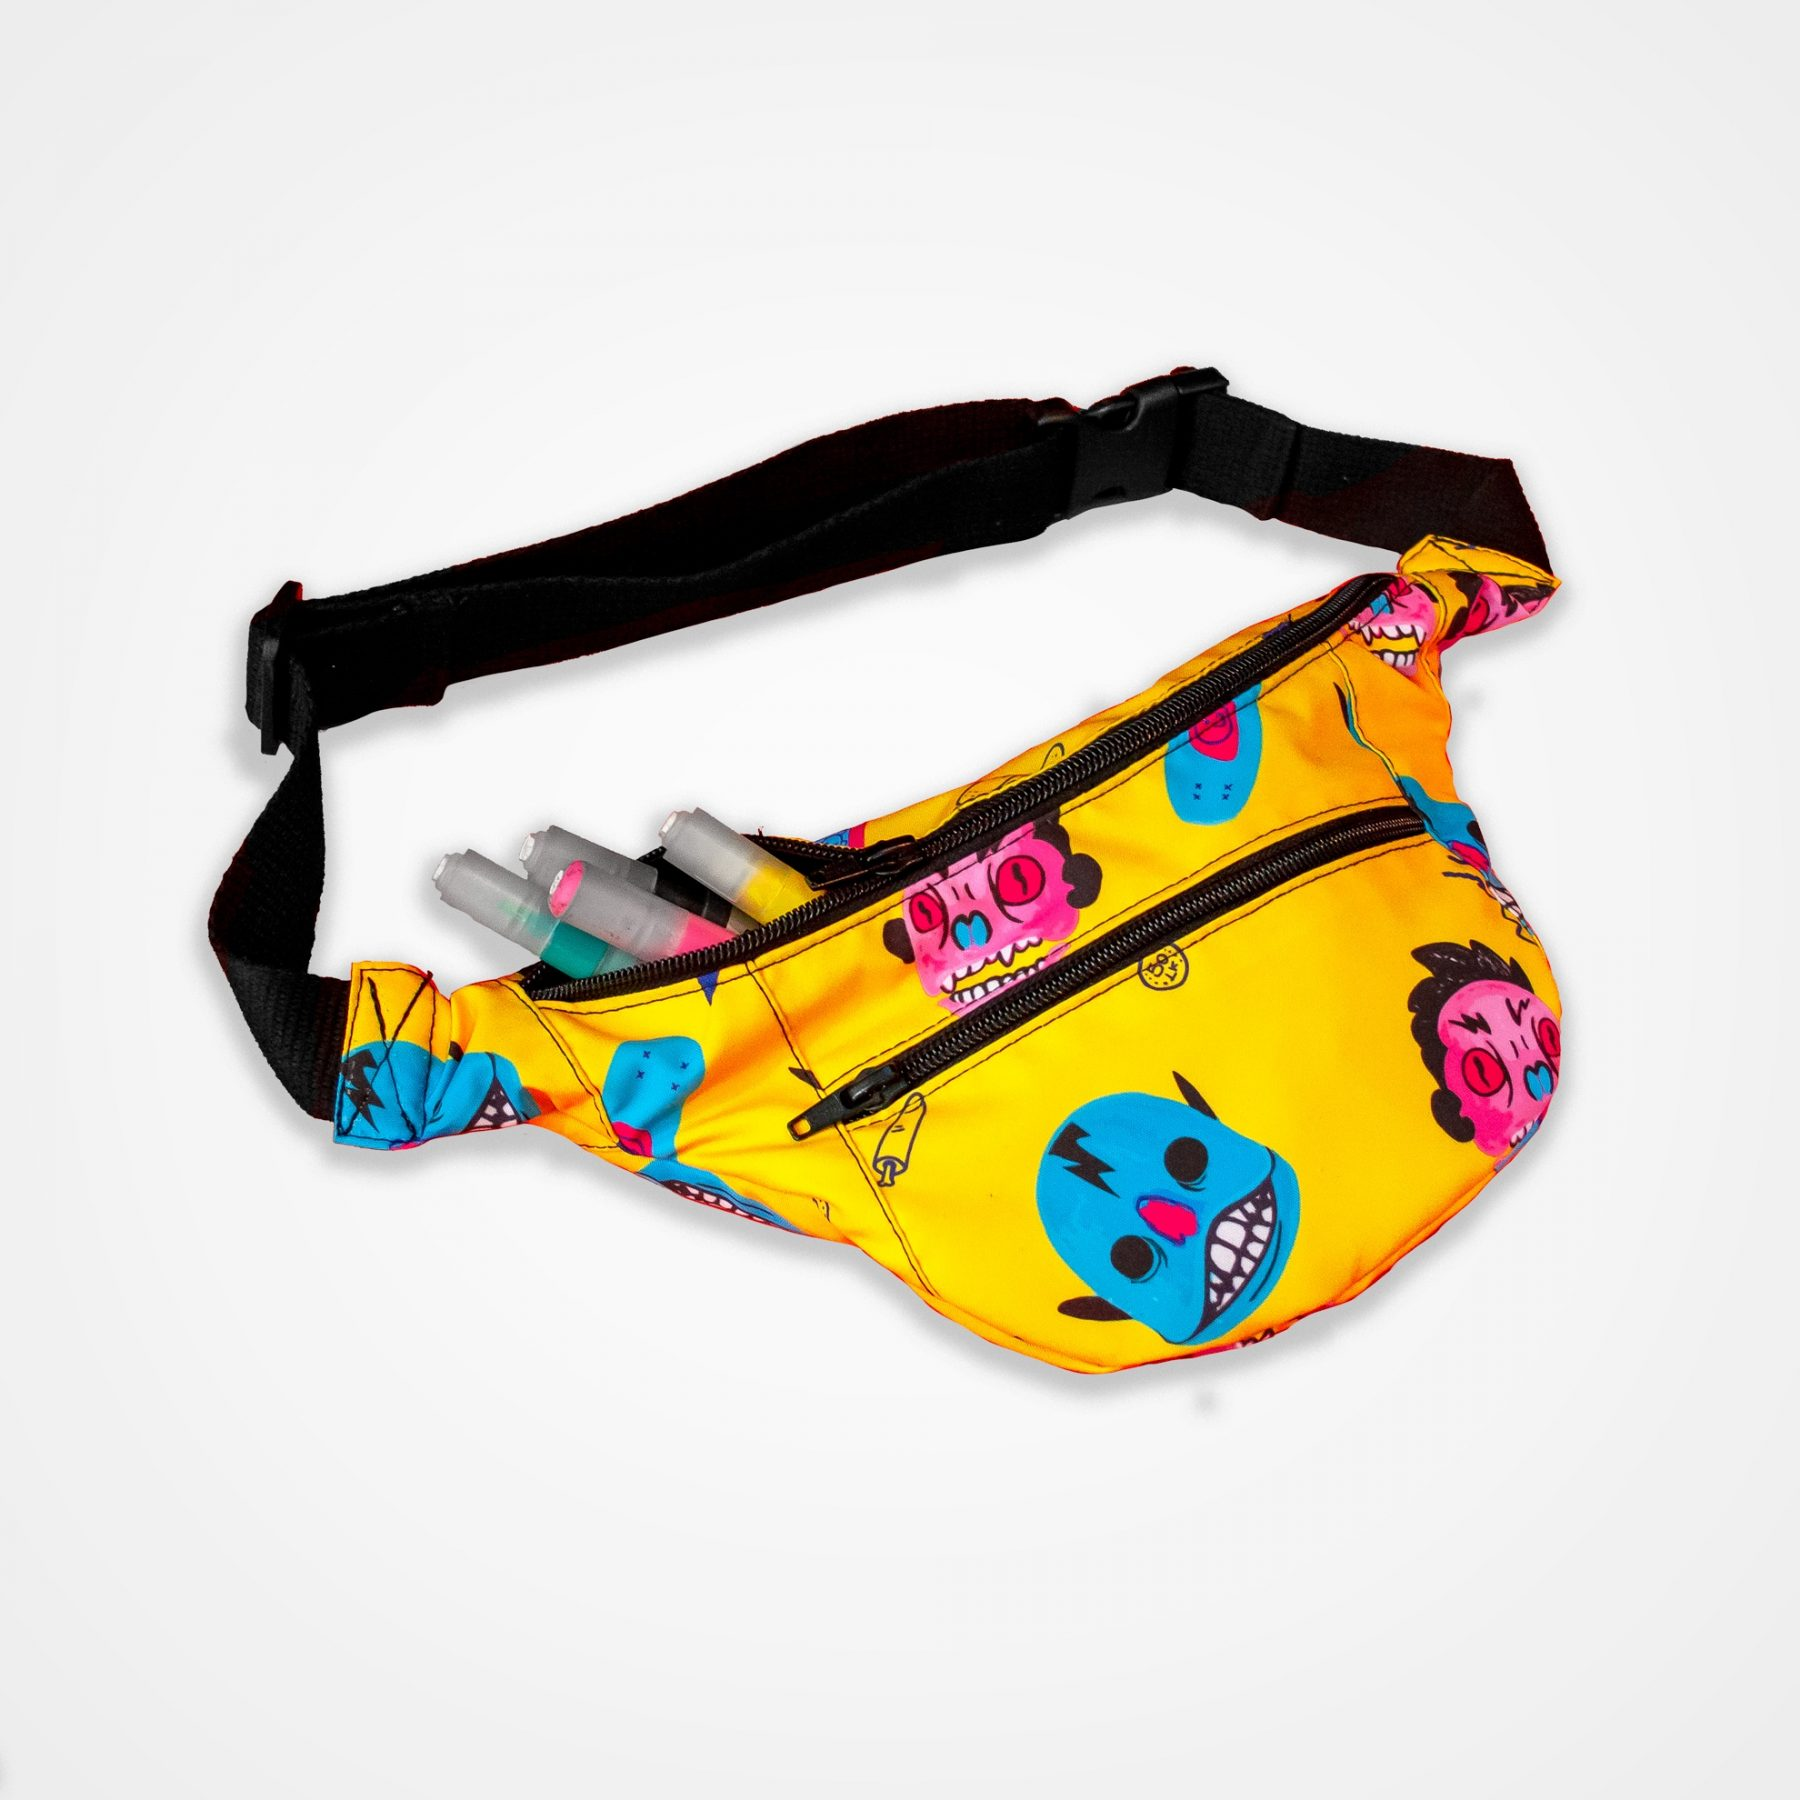 Canguro impermeable Banditas hate (frontal)